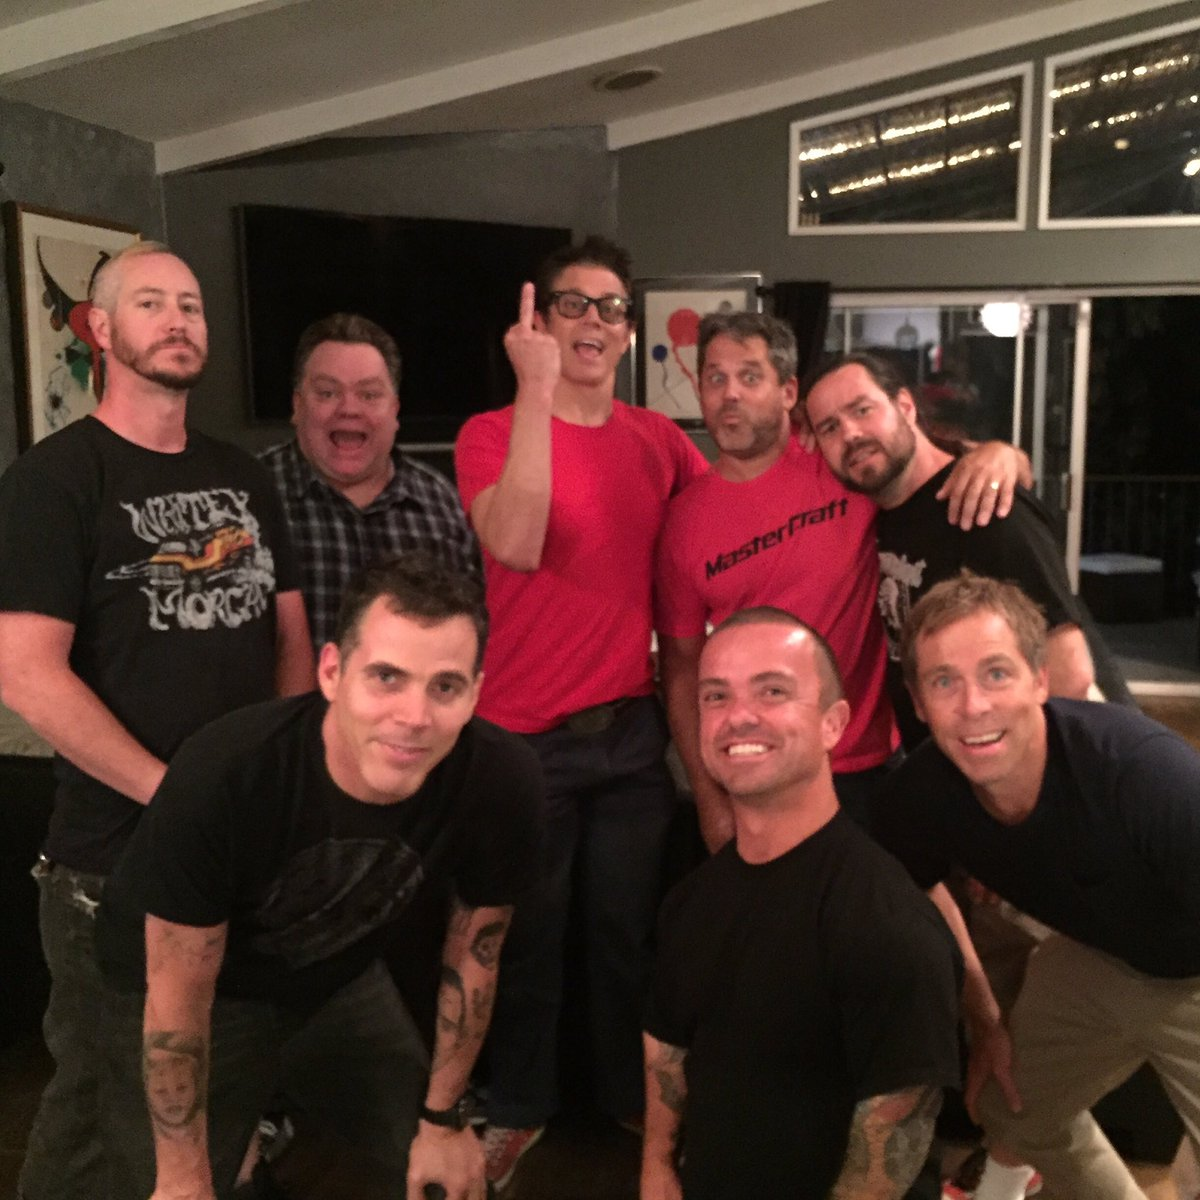 Me and the boys at Steve O's house tonight. First time in a long time. Too bad Bam is in Sweden, he was missed.❤️❤️ https://t.co/migRurXJXR